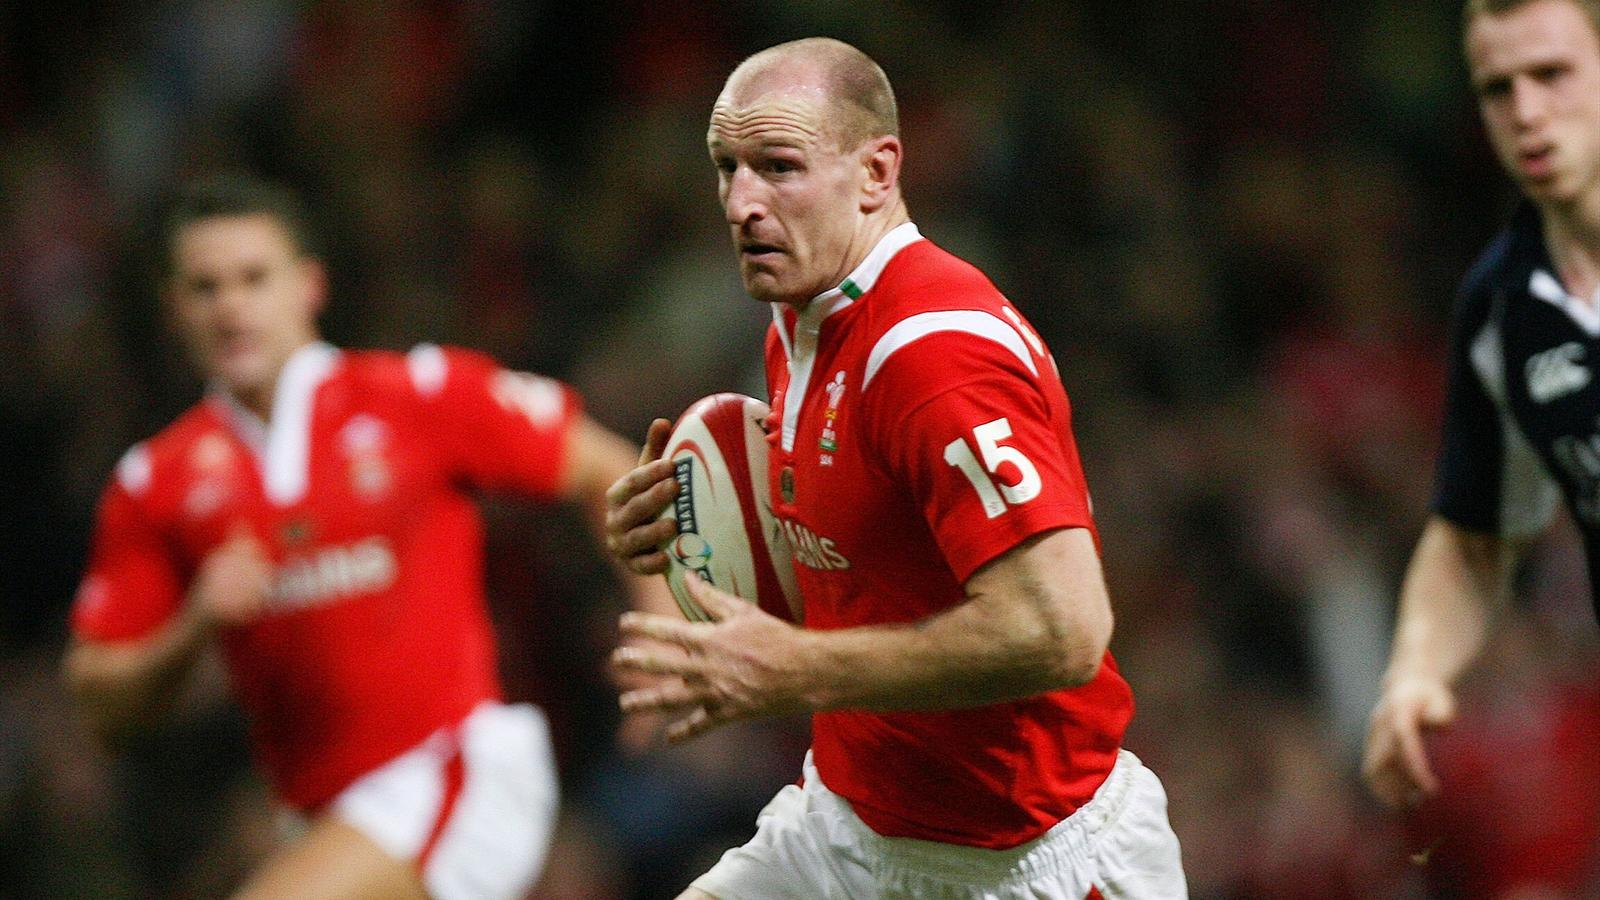 Gareth Thomas in action for Wales